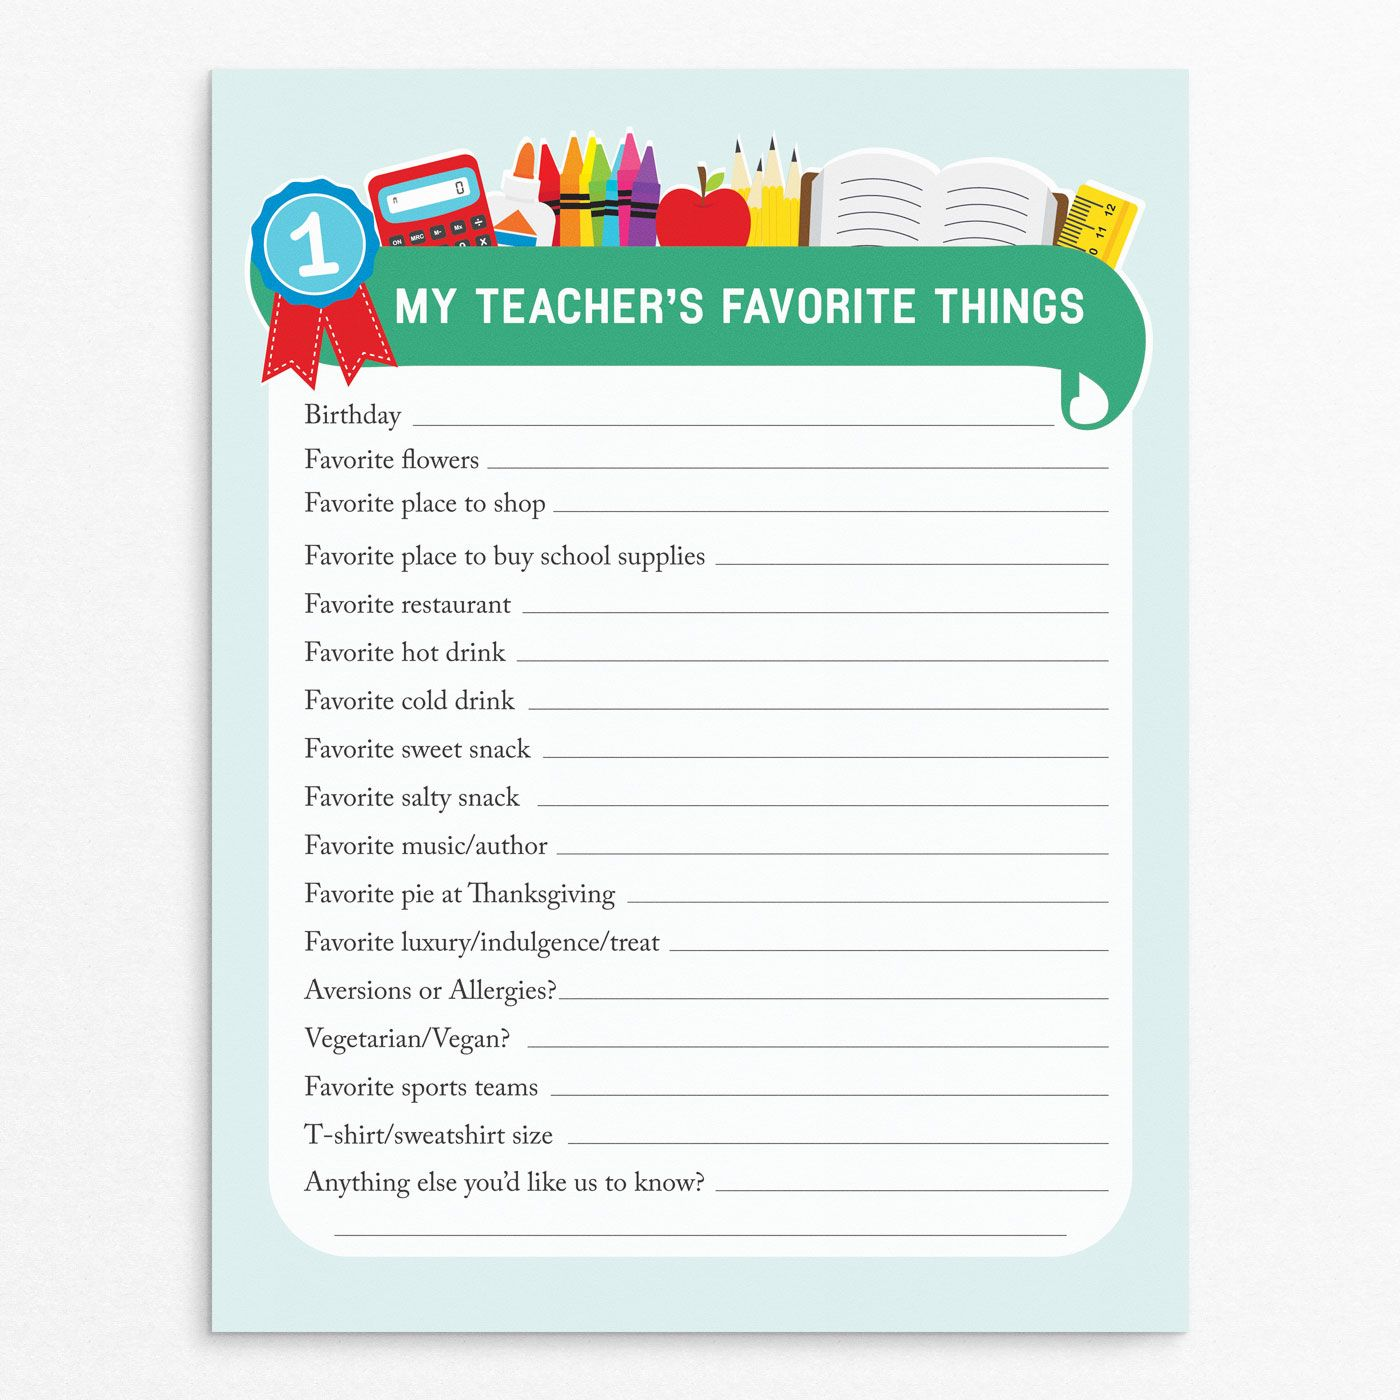 photo relating to Teacher Favorite Things Printable identify Instructor Preferred Components: Printable Questionnaire for Instructor